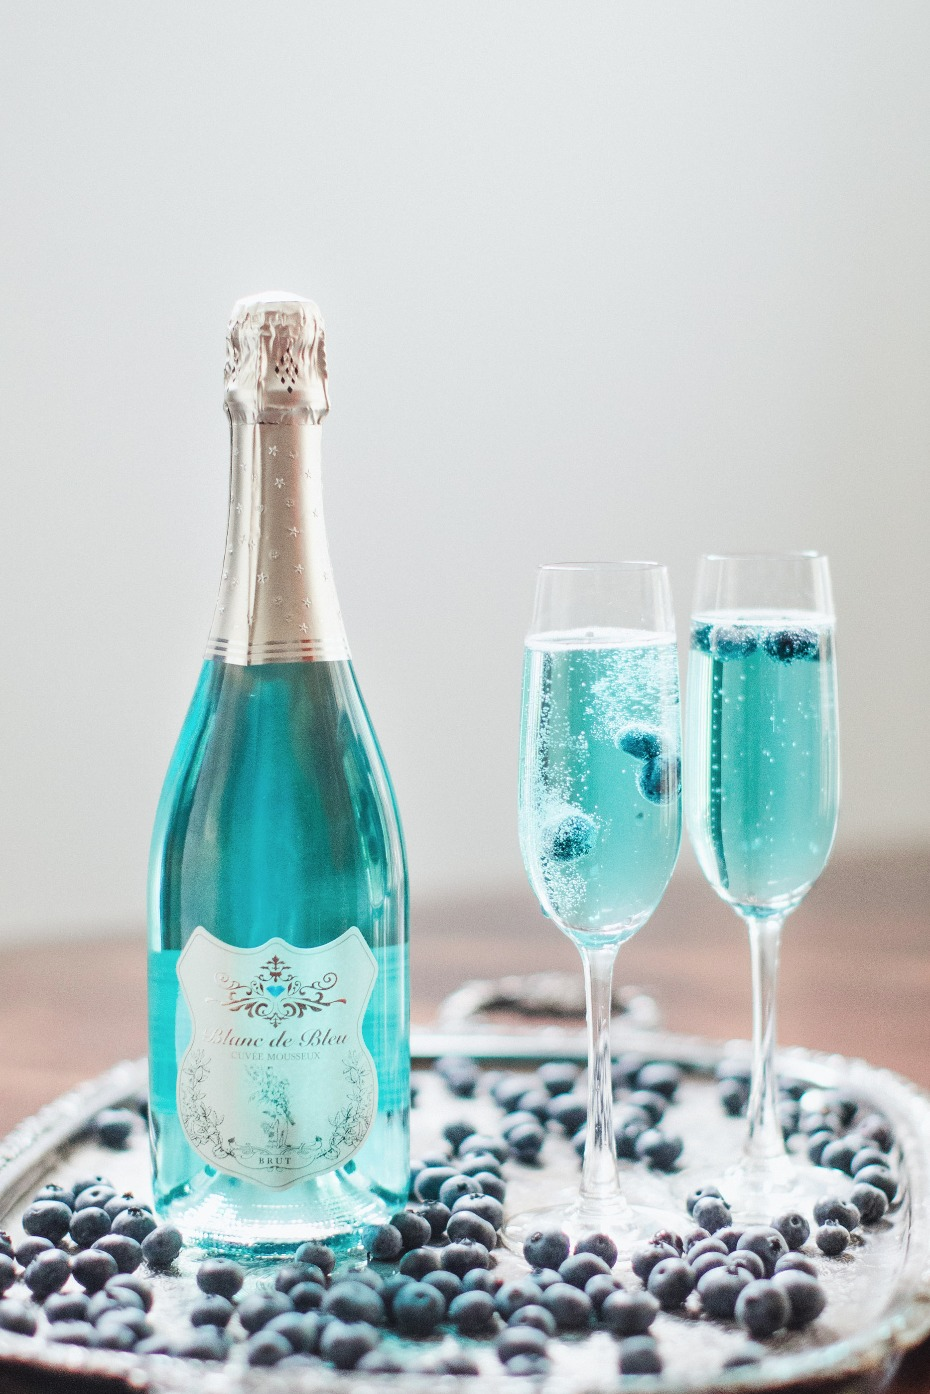 A Tiffany Blue Wedding Toast with Blanc de Bleu Cuvee Mousseux